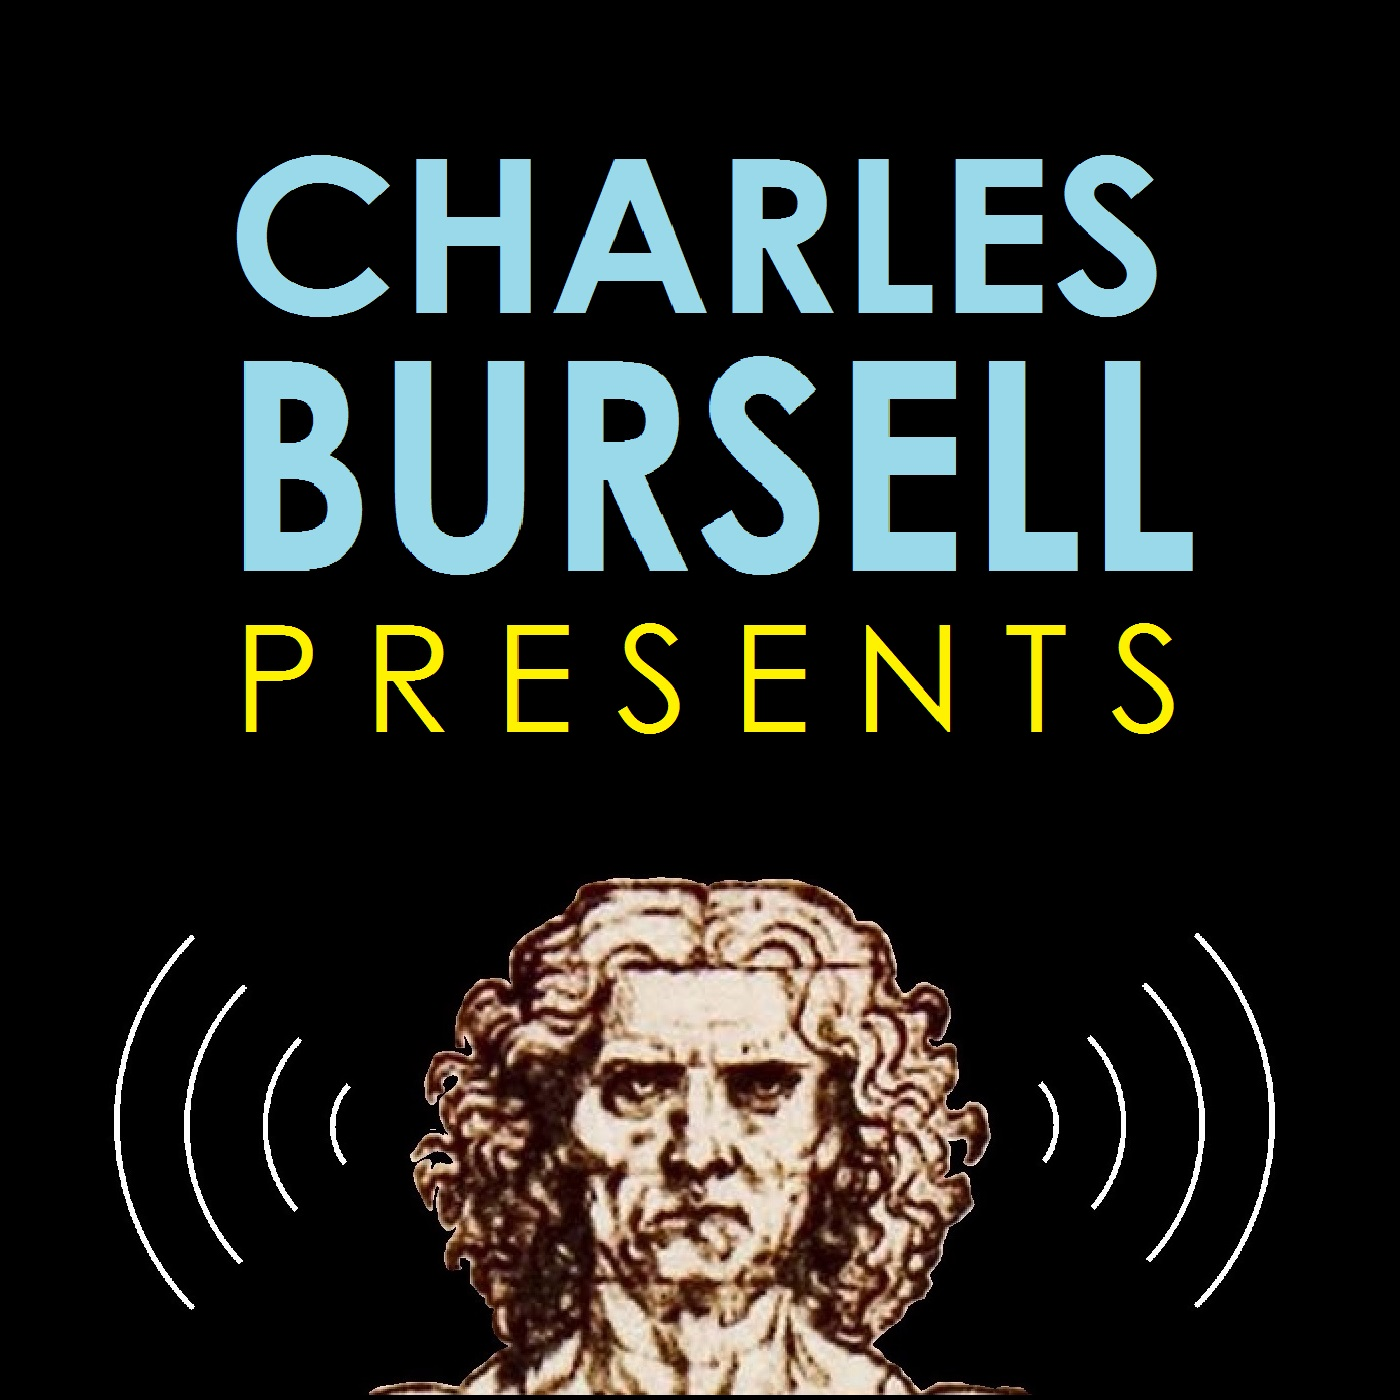 Charles Bursell Presents show art